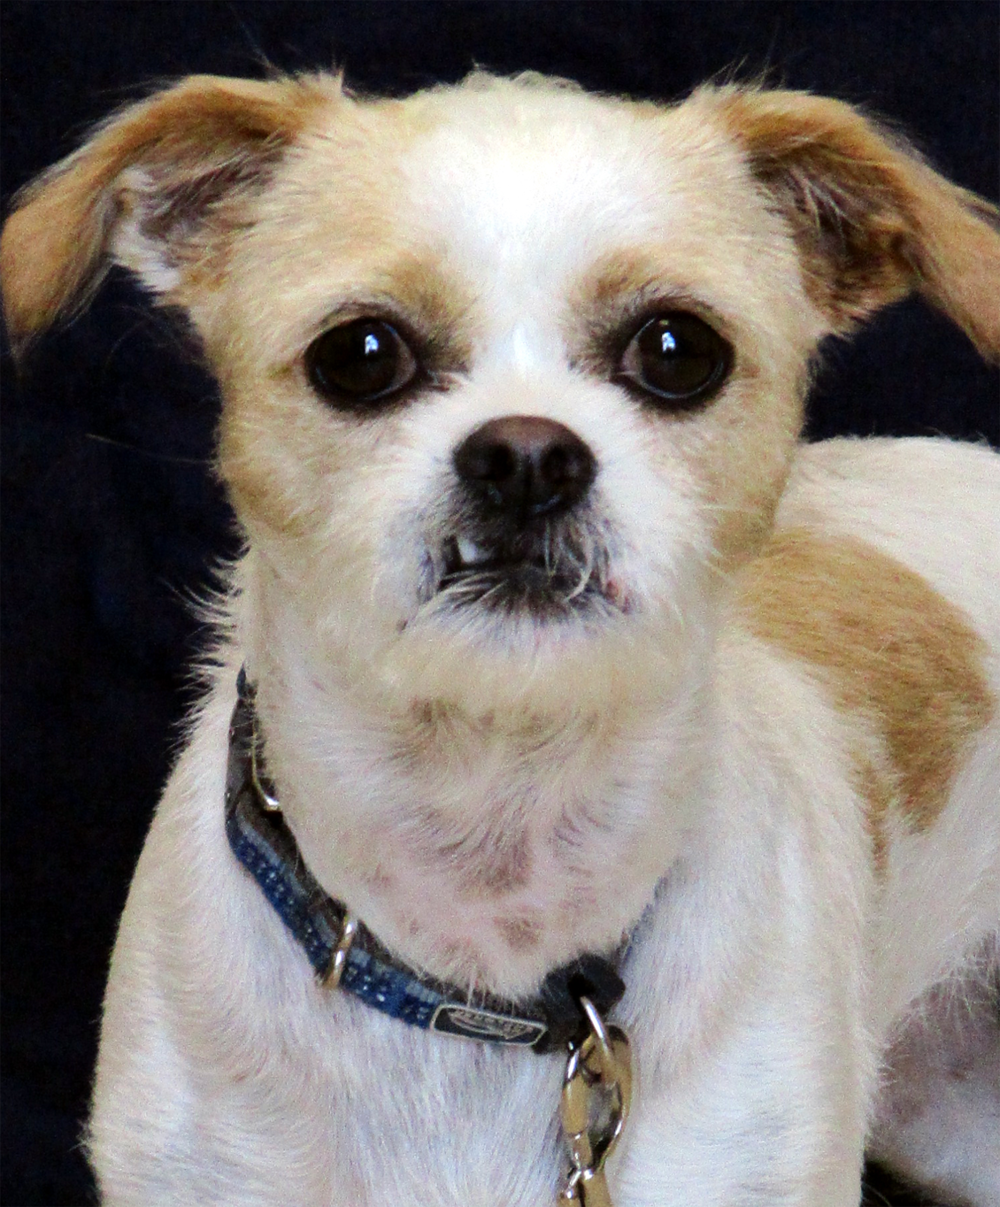 Chico is a 2 year old Shih Tzu and Chihuahua mix. His confidence is not high so a family that can take time and be calm while he comes out of his shell would be ideal. This little dog has a big personality.